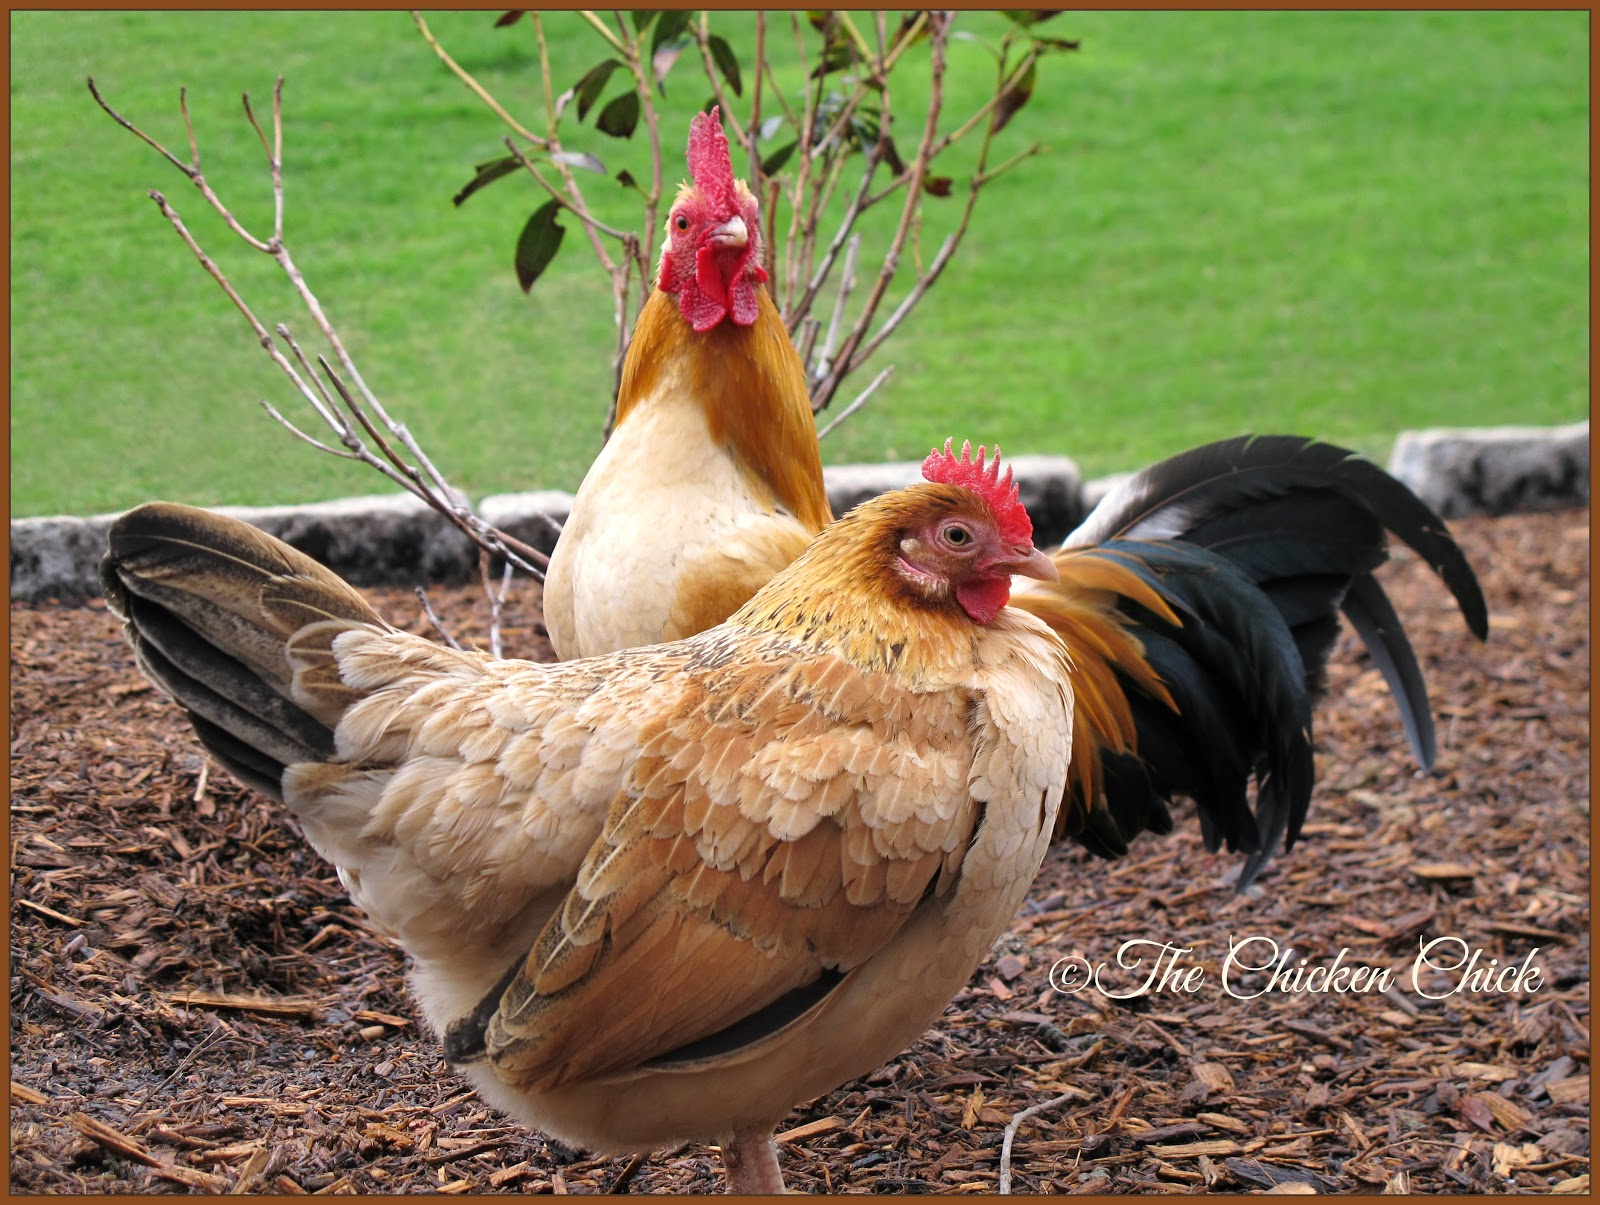 Pet chickens can be rehabilitated when they are injured, can live happy, high-quality lives with certain genetic imperfections and can be wonderful companion animals with the dedication and love of their caretakers.